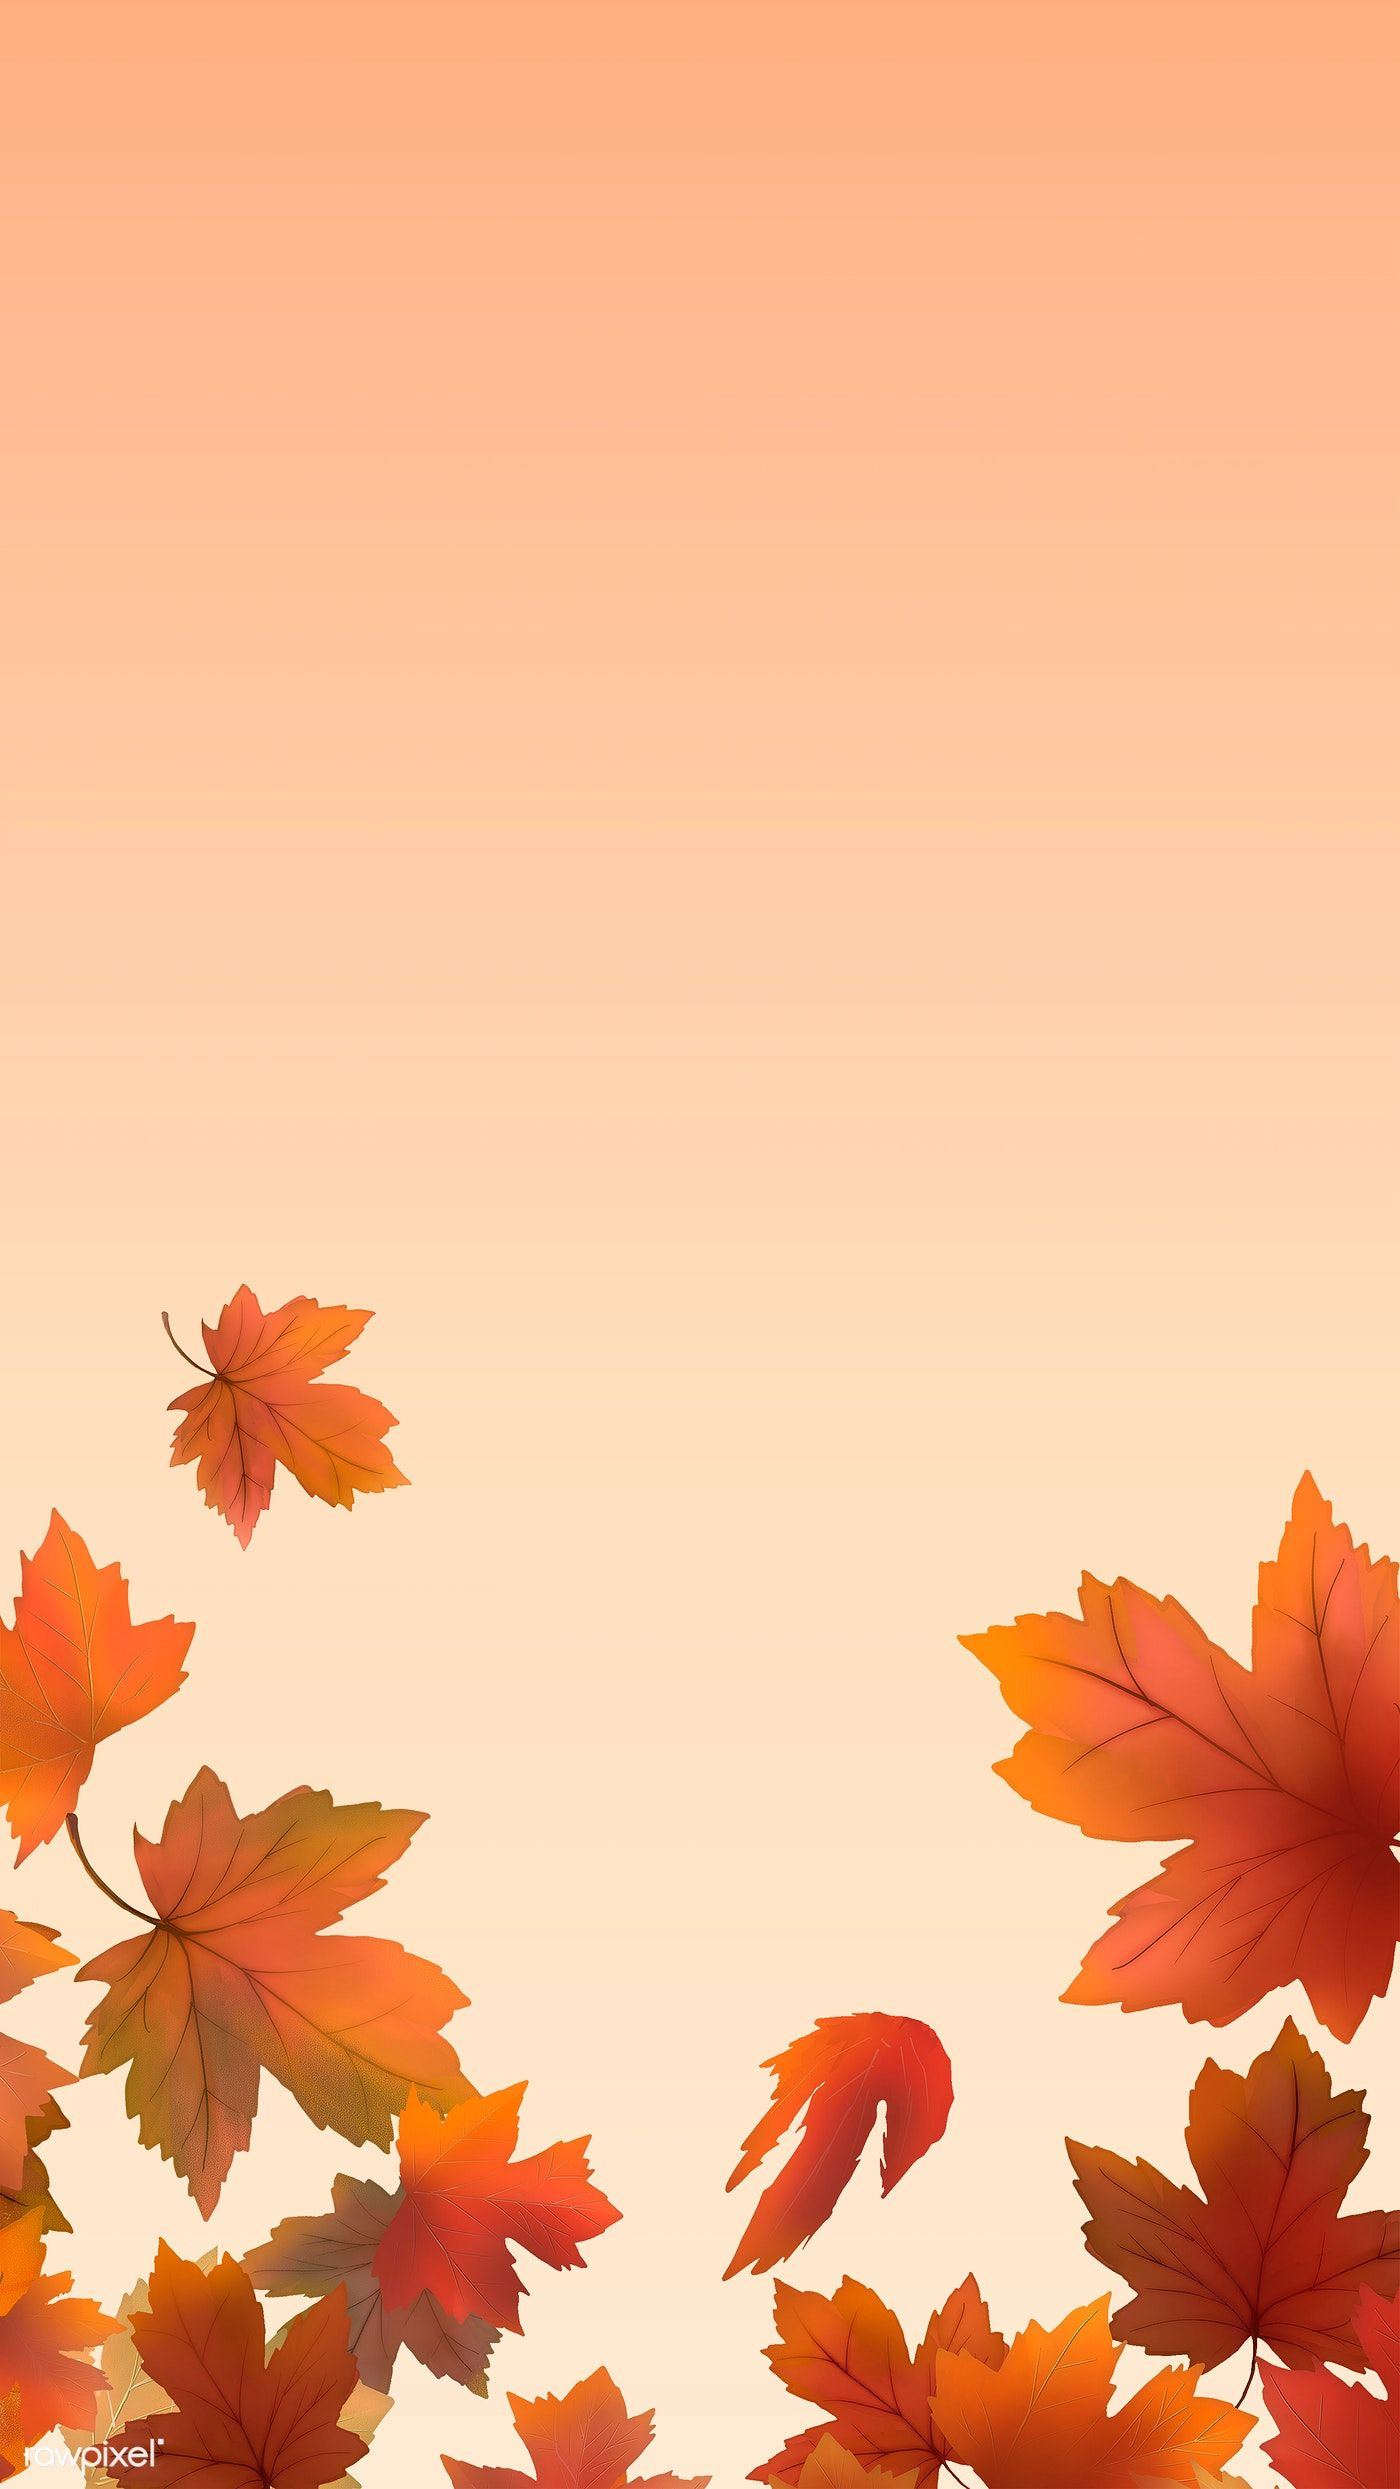 Red Maple Leaf Framed Background Illustration Free Image By Rawpixel Com Autumn Leaves Wallpaper Fall Wallpaper Iphone Wallpaper Fall